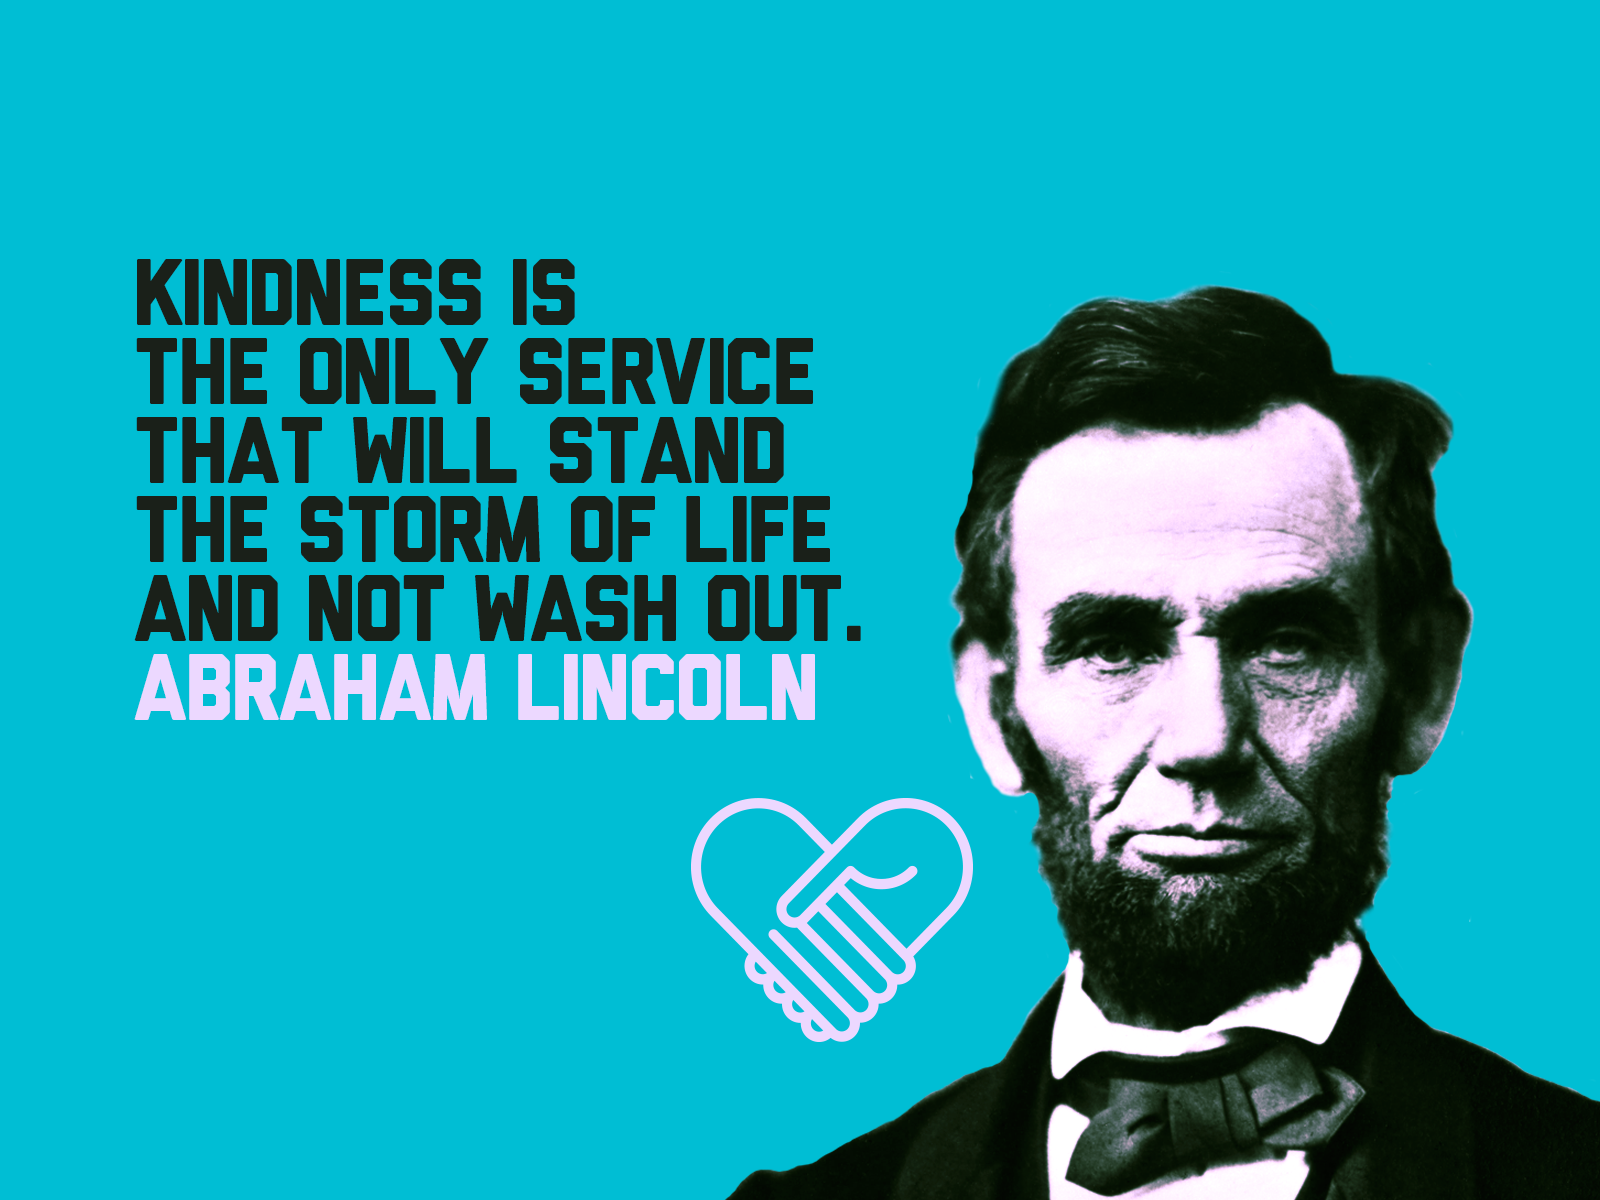 Abraham Lincoln Quotes On Life Kindness Is The Only Service That Will Stand The Storm Of Life And